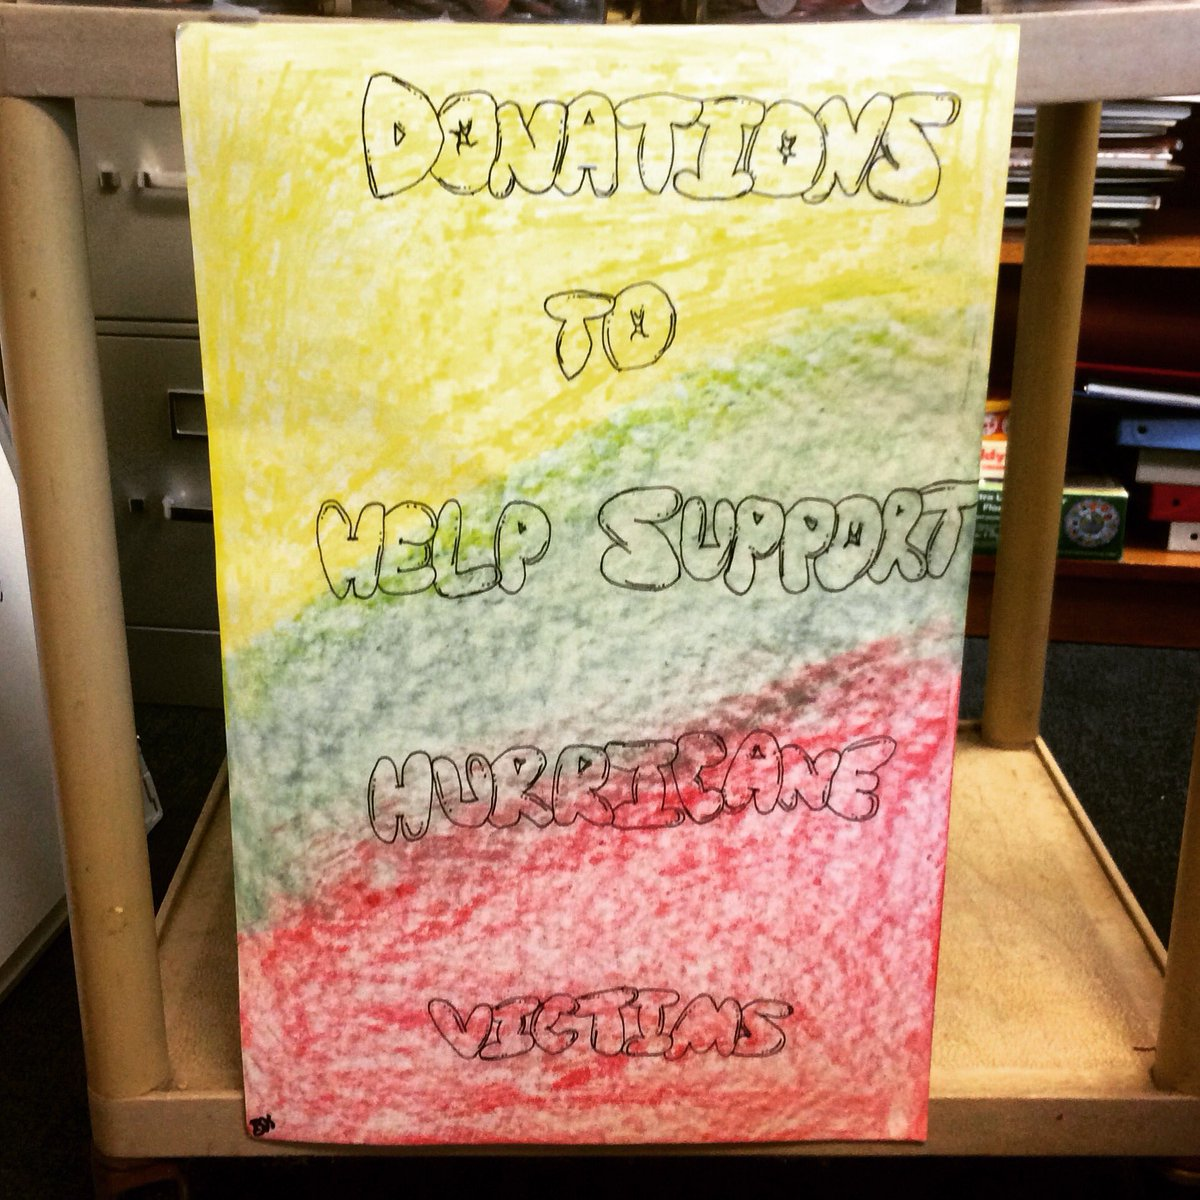 One of our very talented 8th graders created this sign to help WCS raise hurricane relief funds!   #helpothers #donate #wsdvt<br>http://pic.twitter.com/D1I21LaeEI